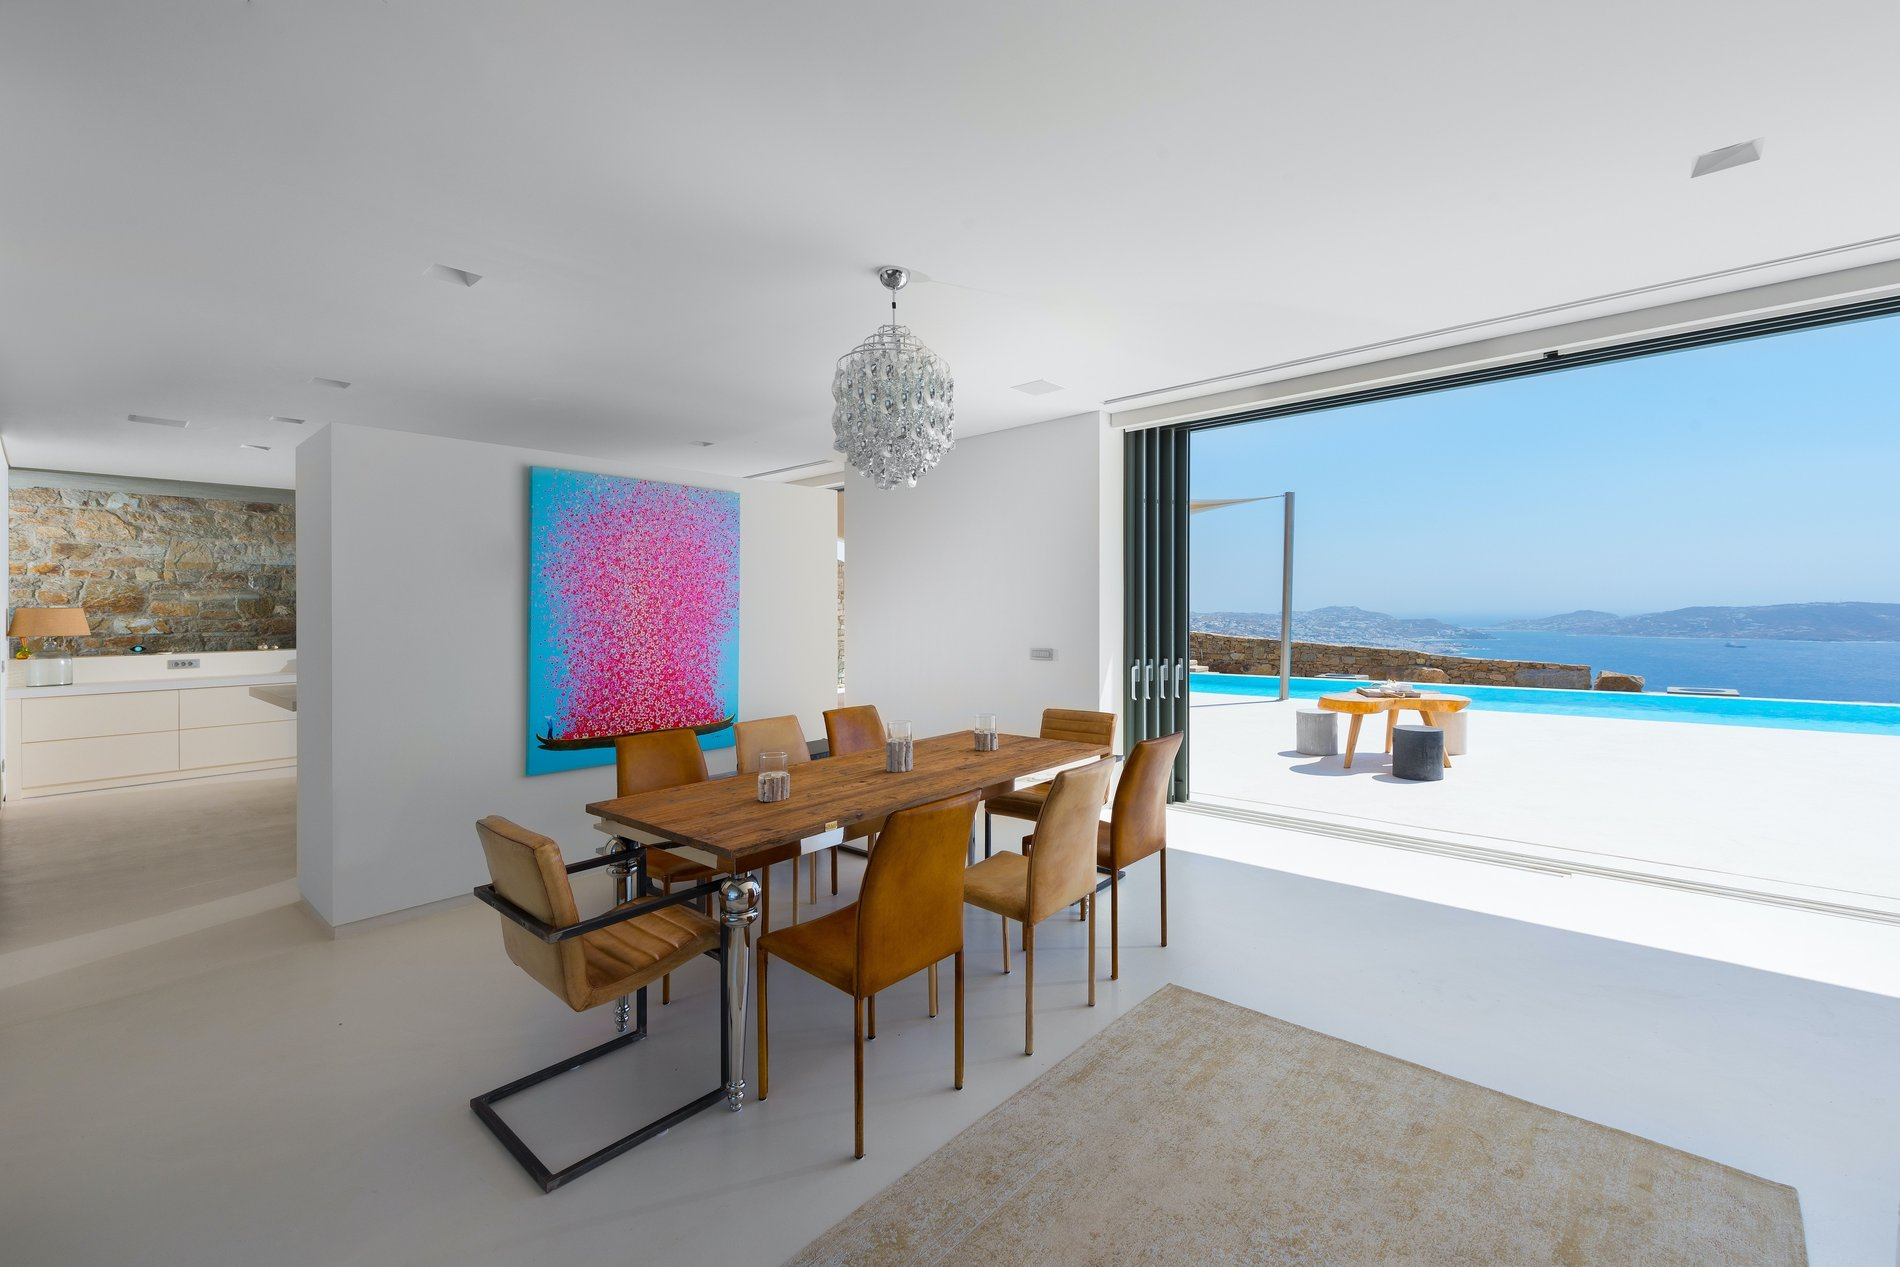 Dining area with a real wood table and chairs for 8 and a stunning view of the Mediterranean.